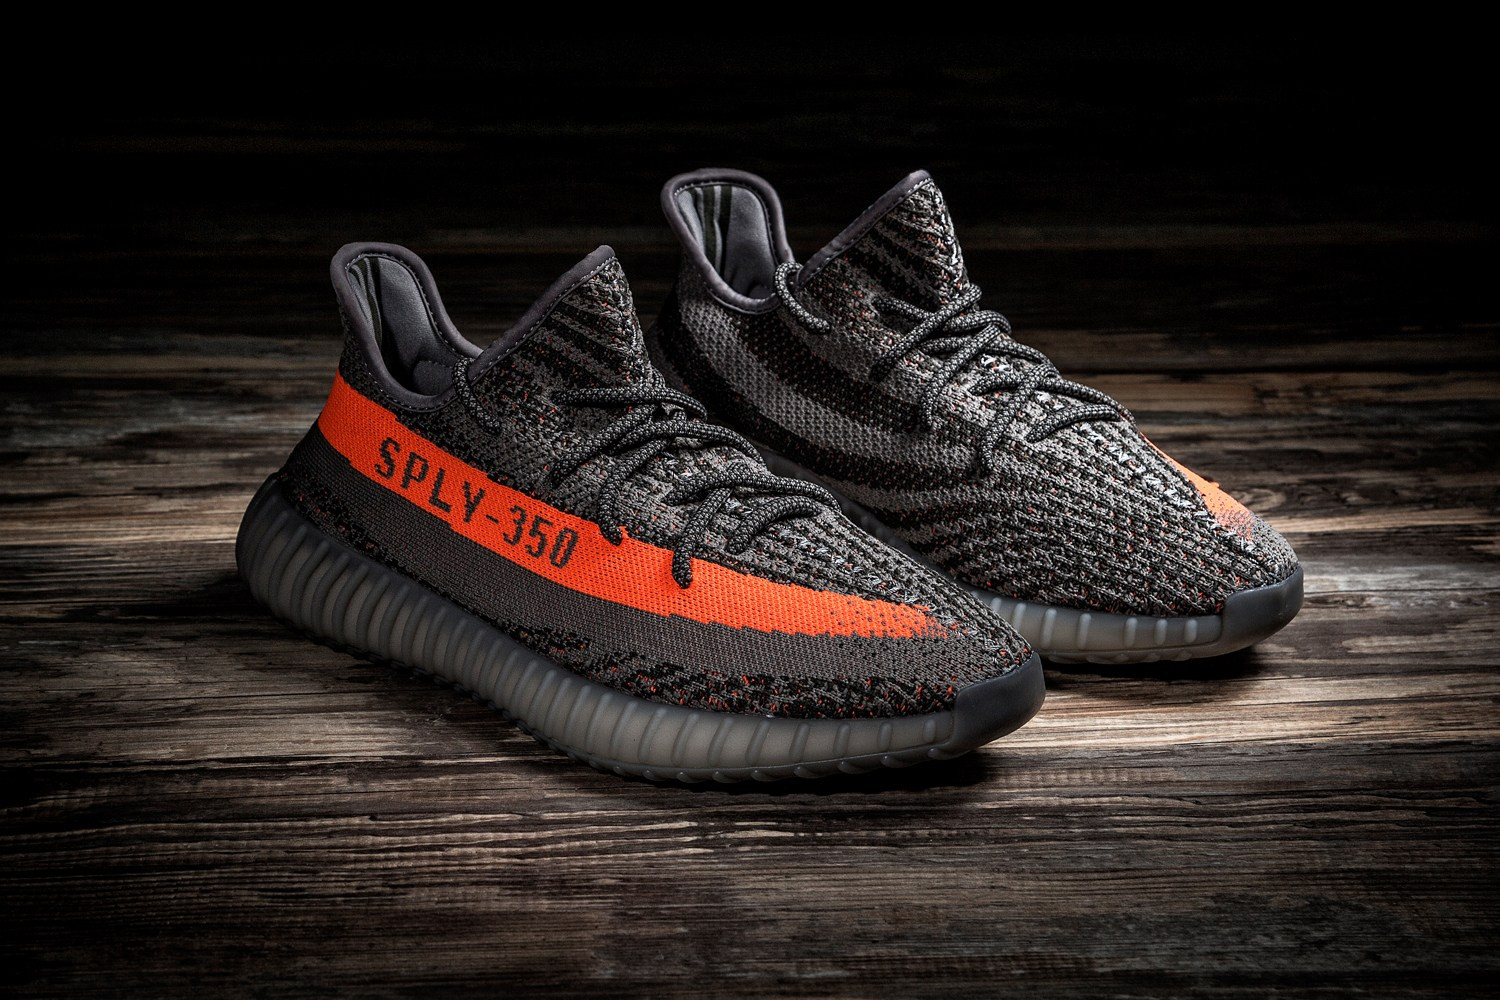 yeezy boost 350 89 dollars